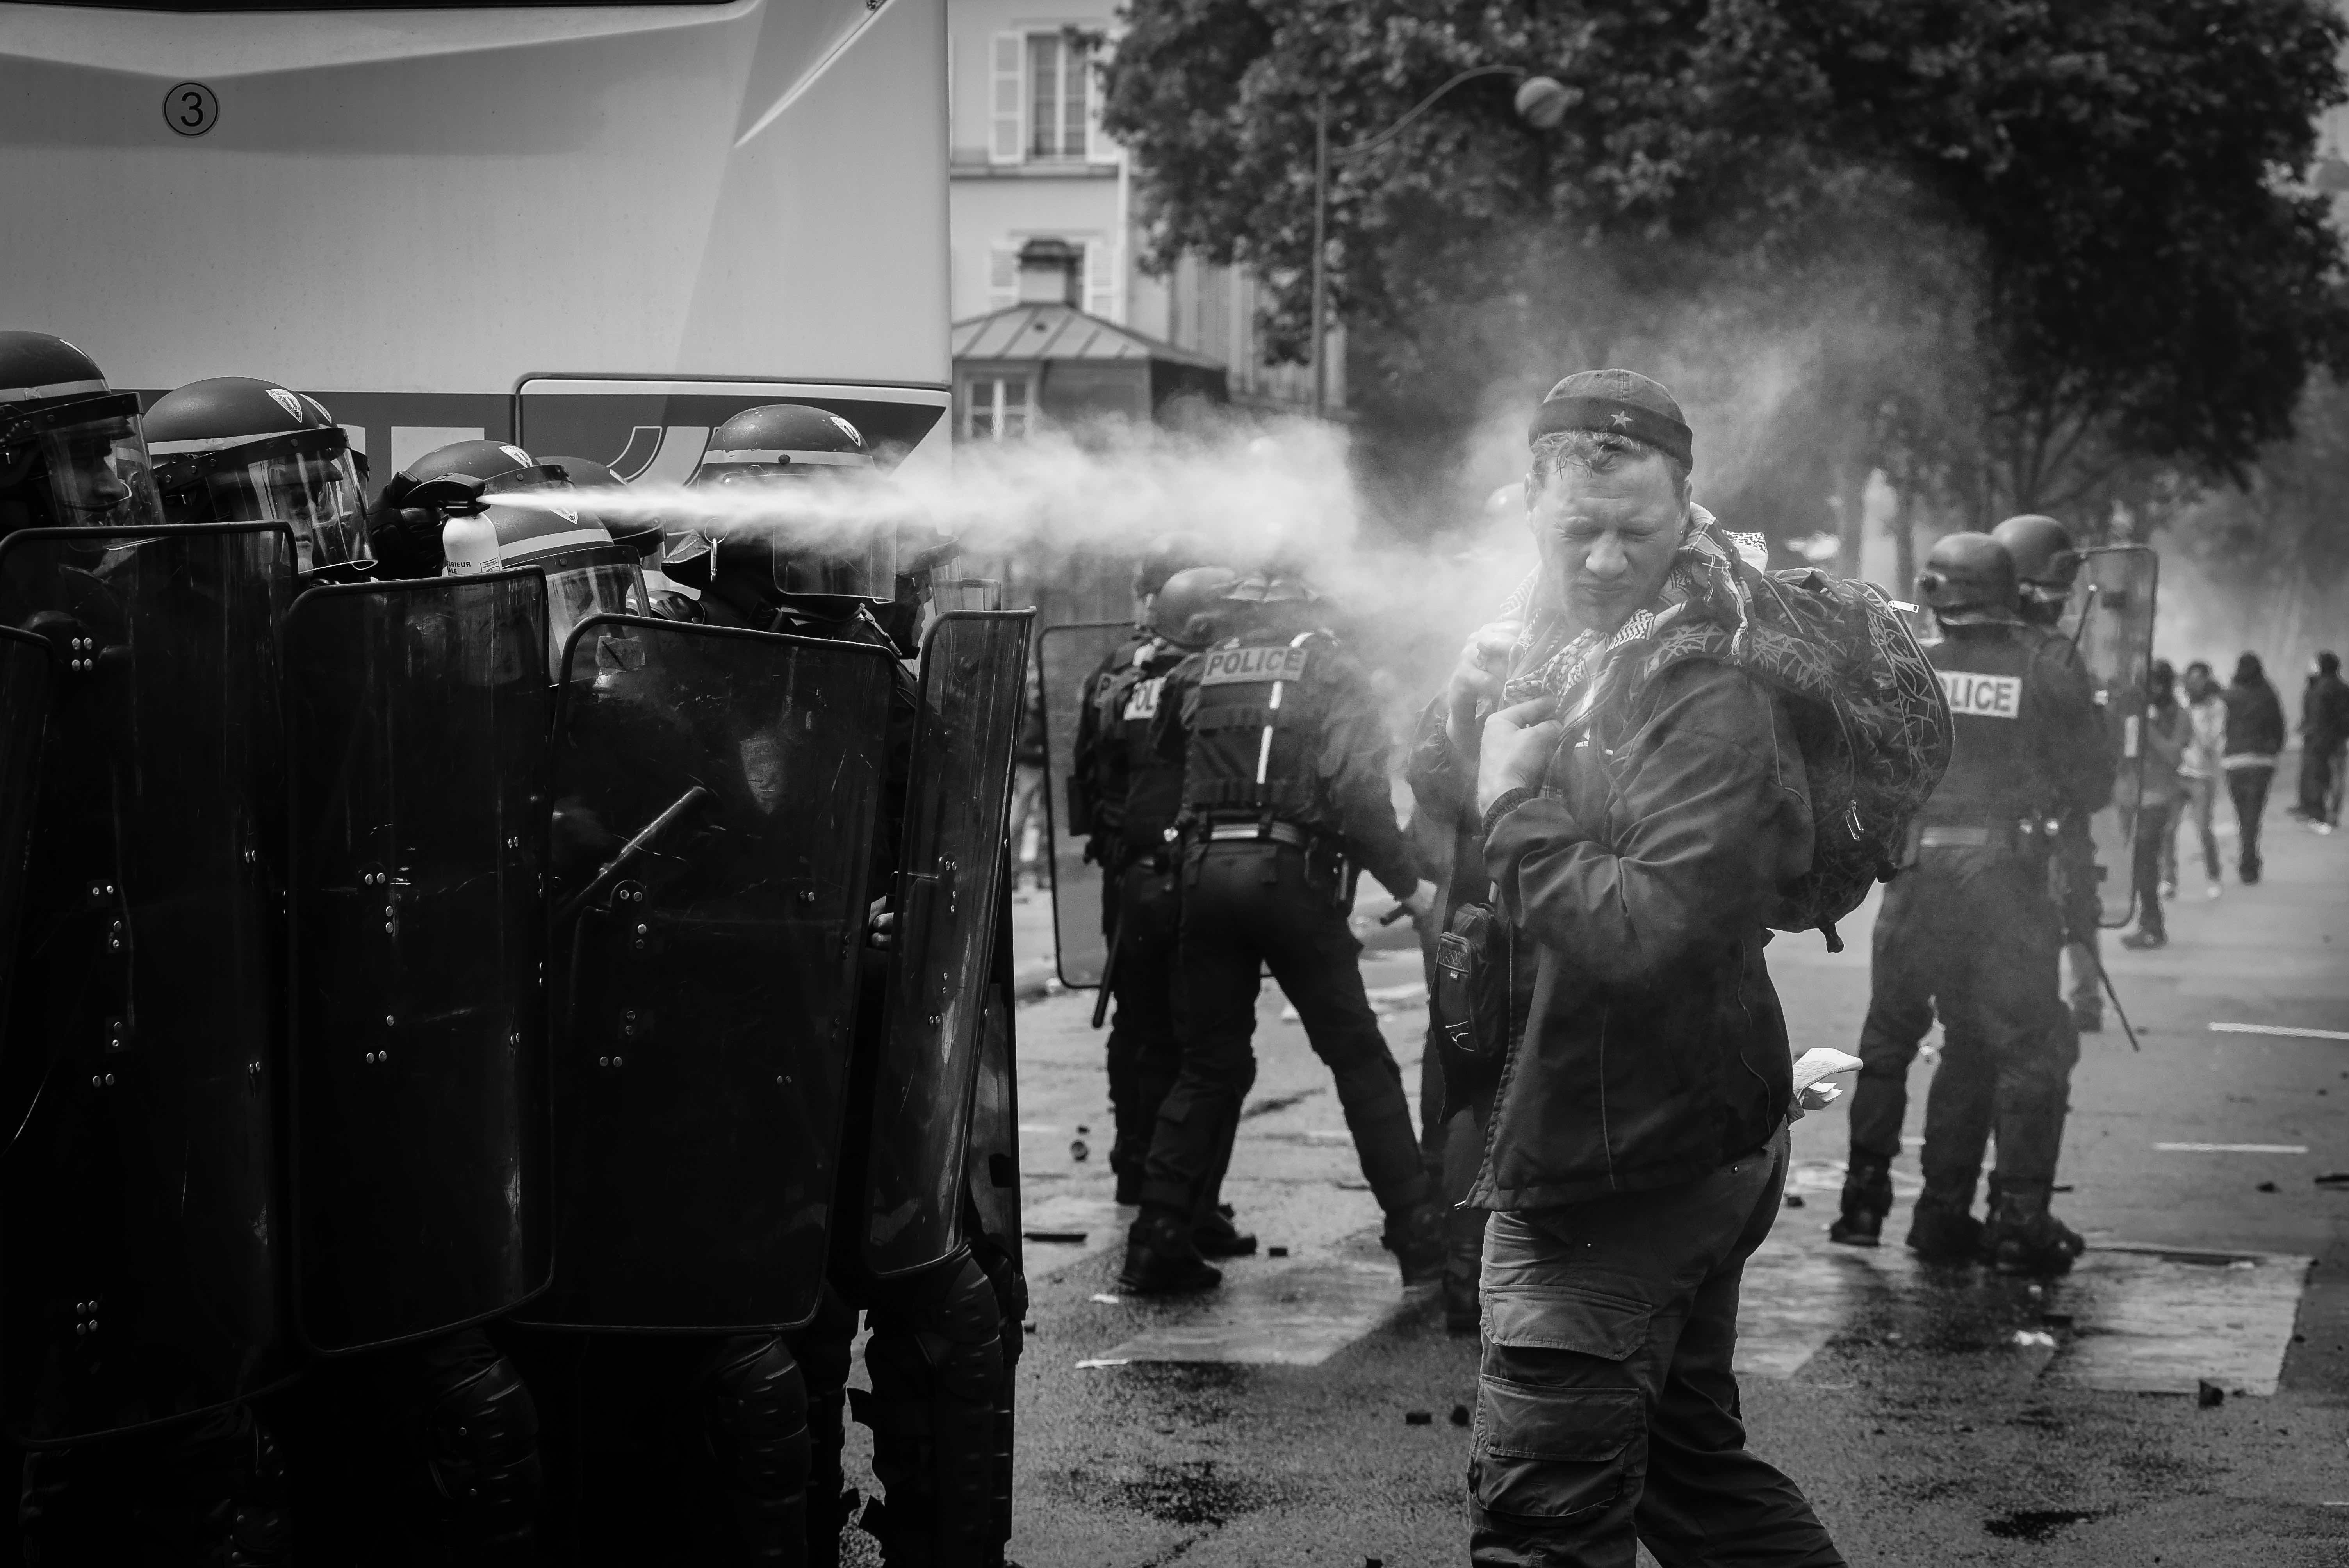 The riot police using tear gas against a demonstrator. Paris, 14 June 2016